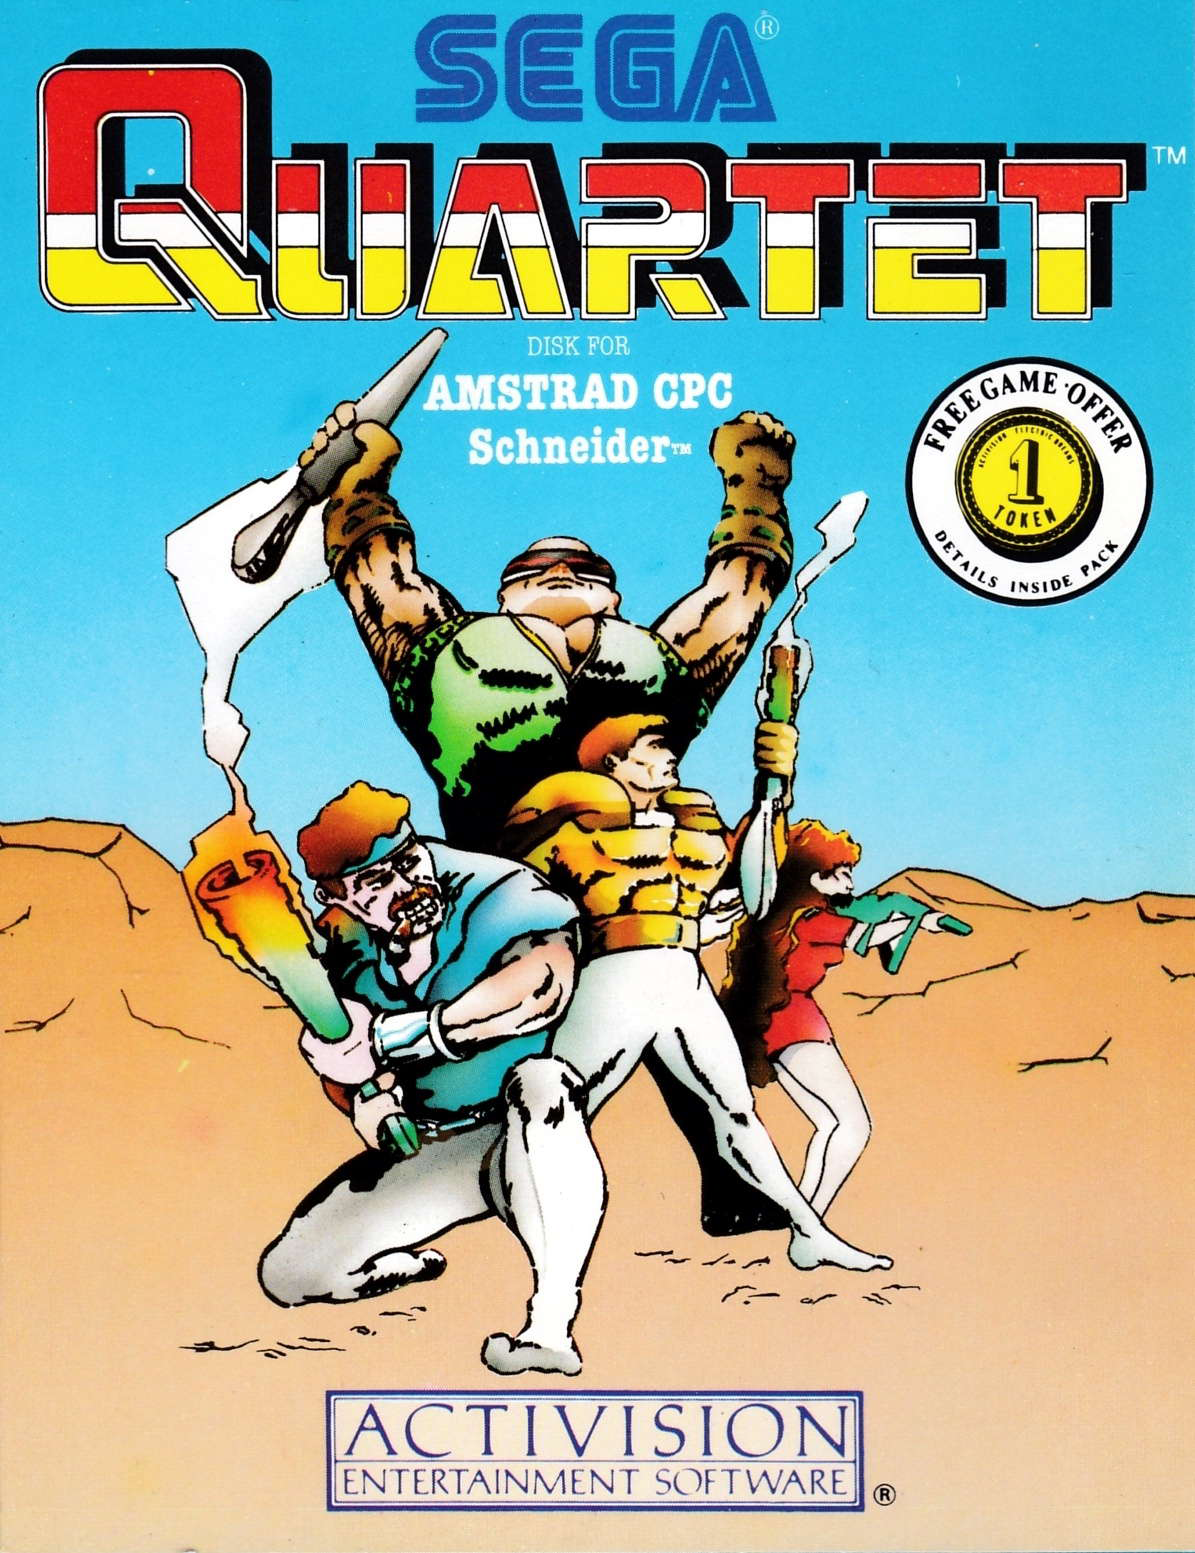 screenshot of the Amstrad CPC game Quartet by GameBase CPC